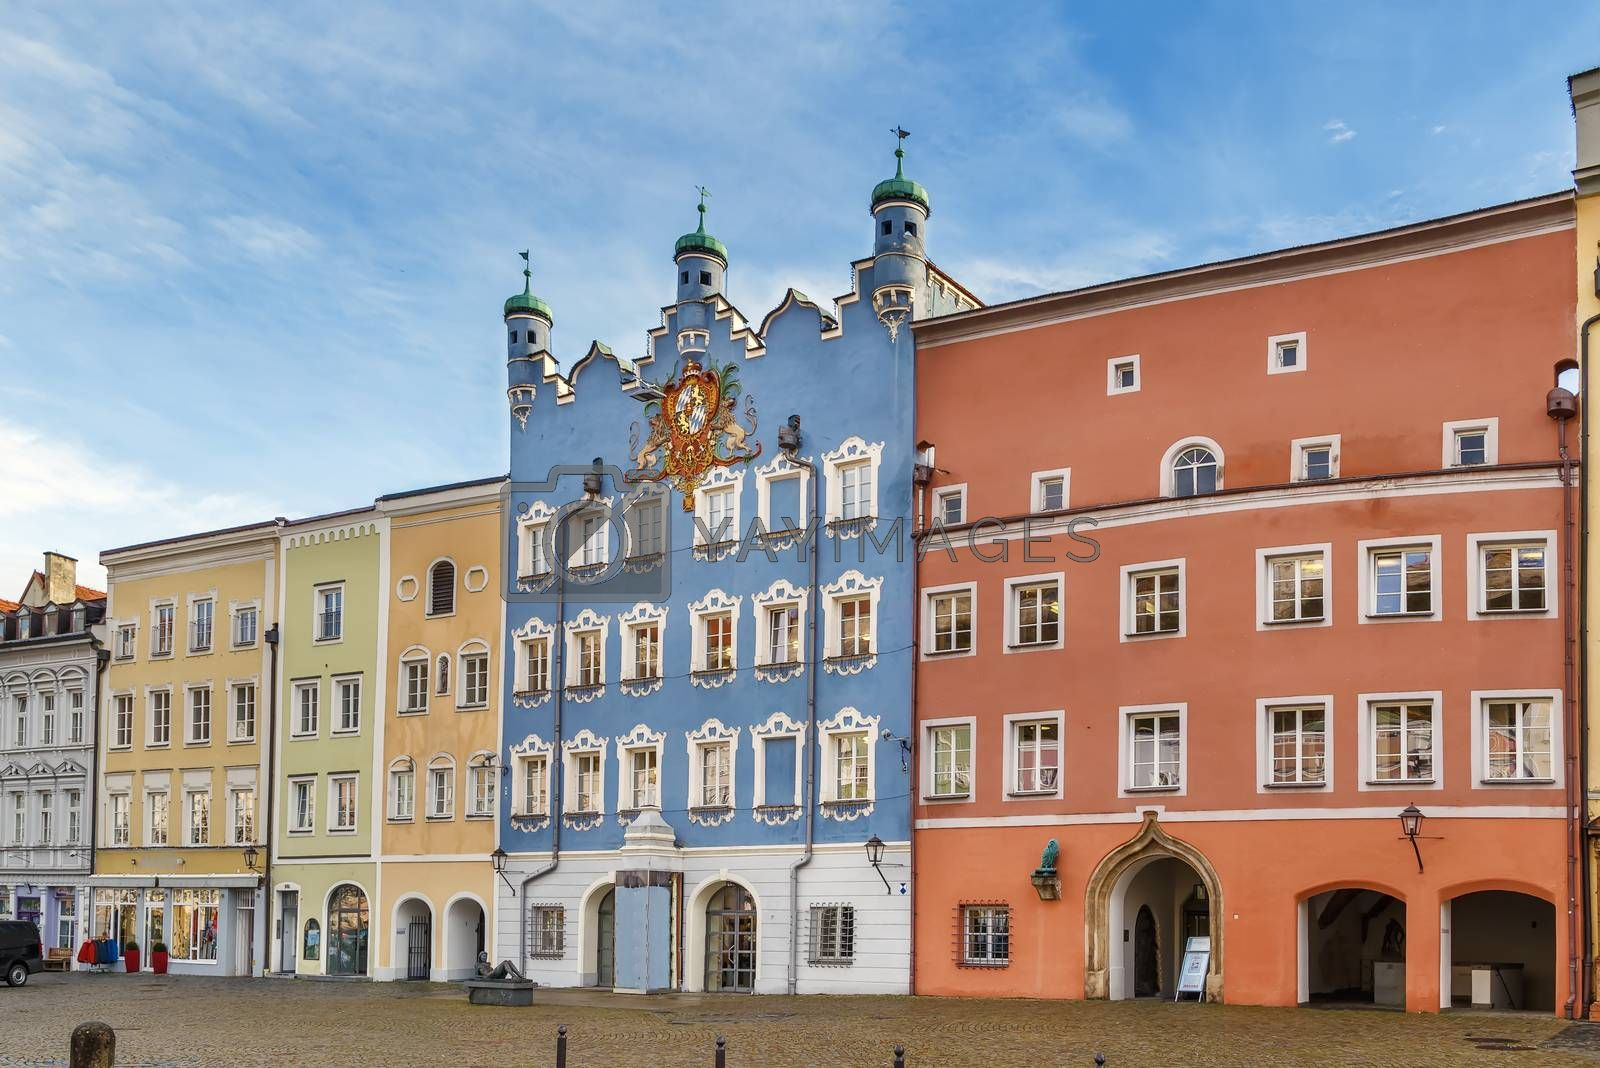 Historical houses on Town square in Burghausen, Germany